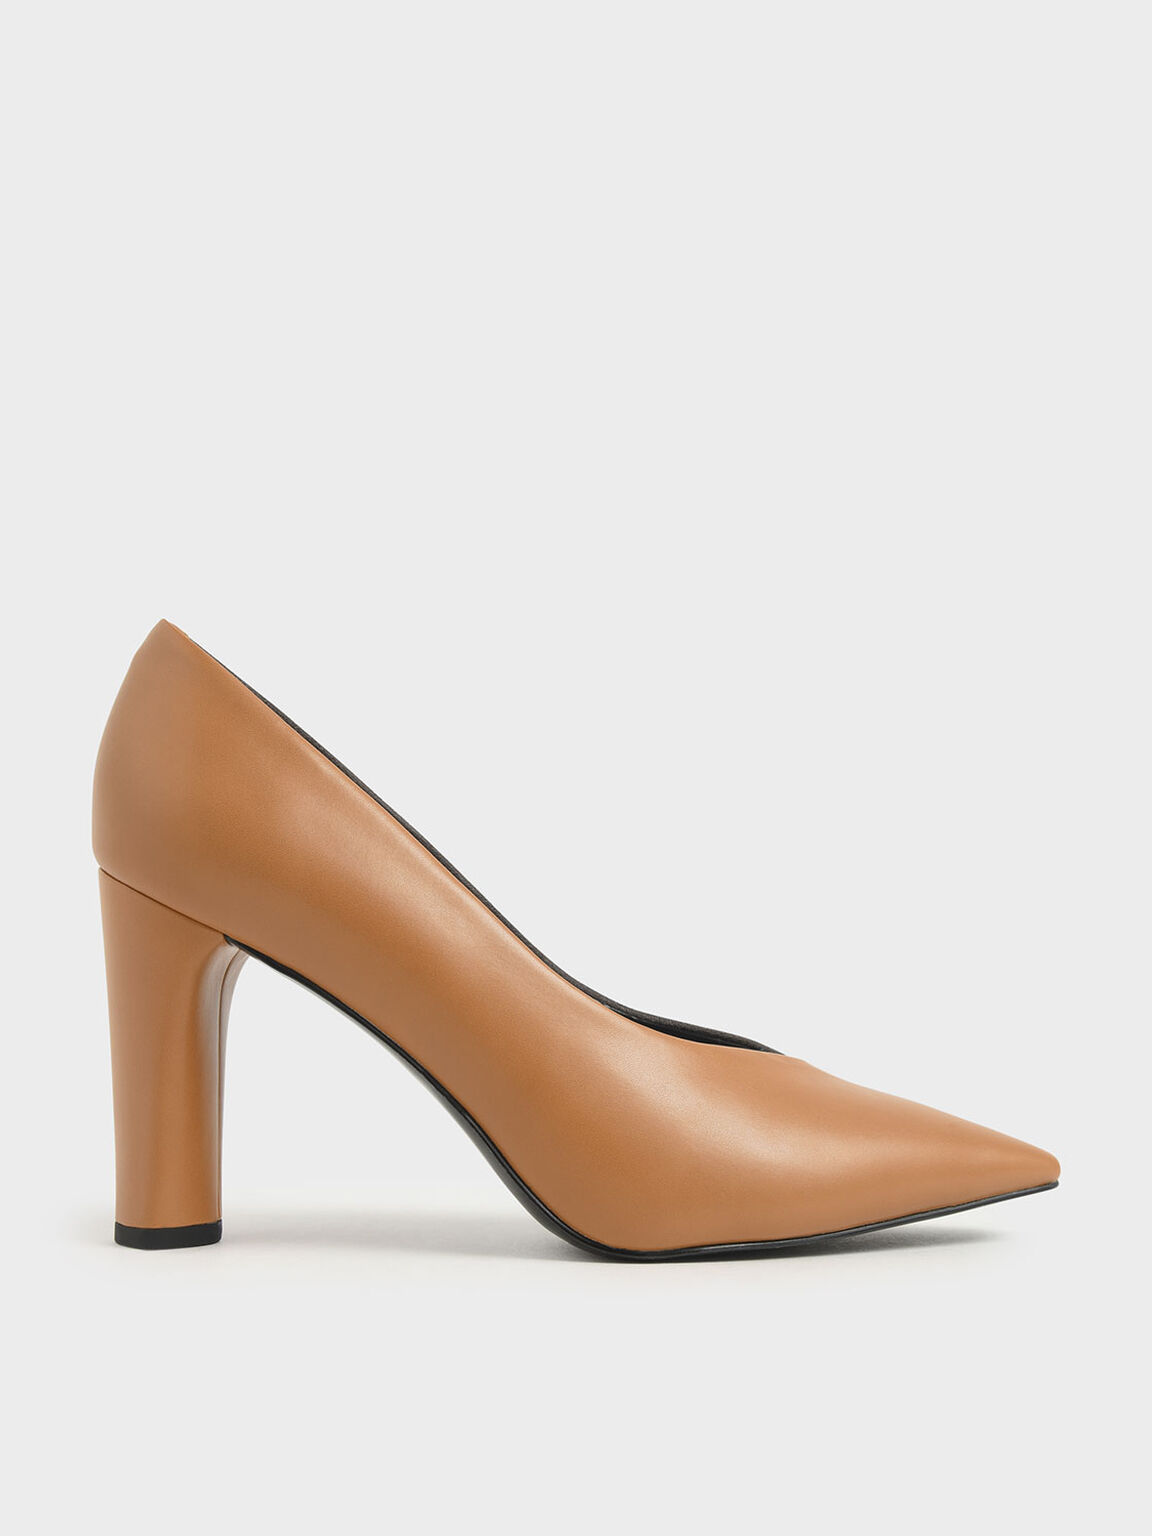 Two-Tone Textured Cylindrical Heel Pumps, Caramel, hi-res